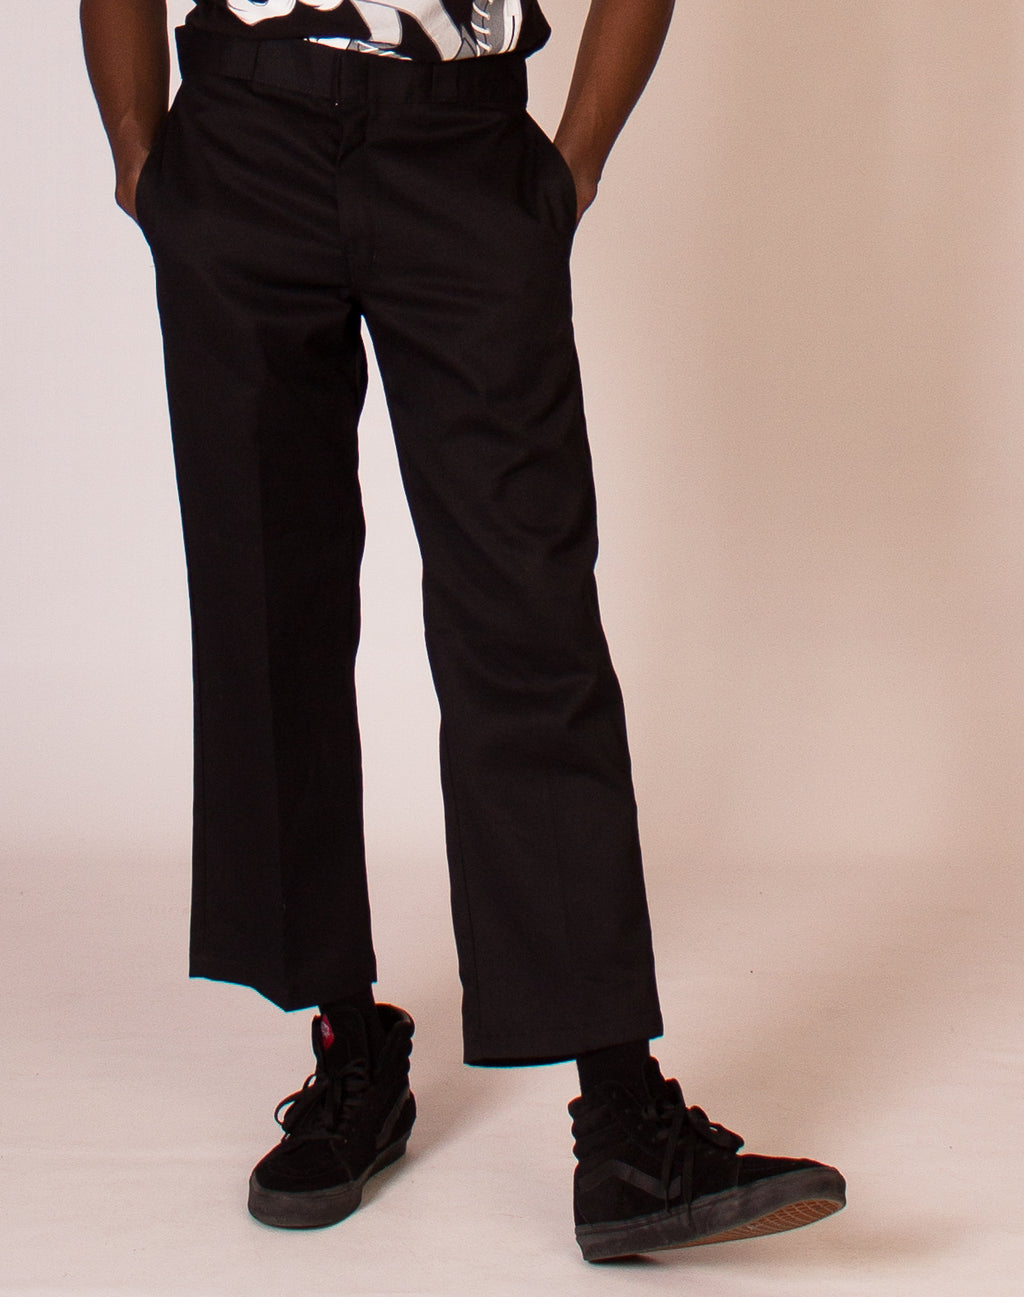 DICKIES BLACK 874 TROUSERS